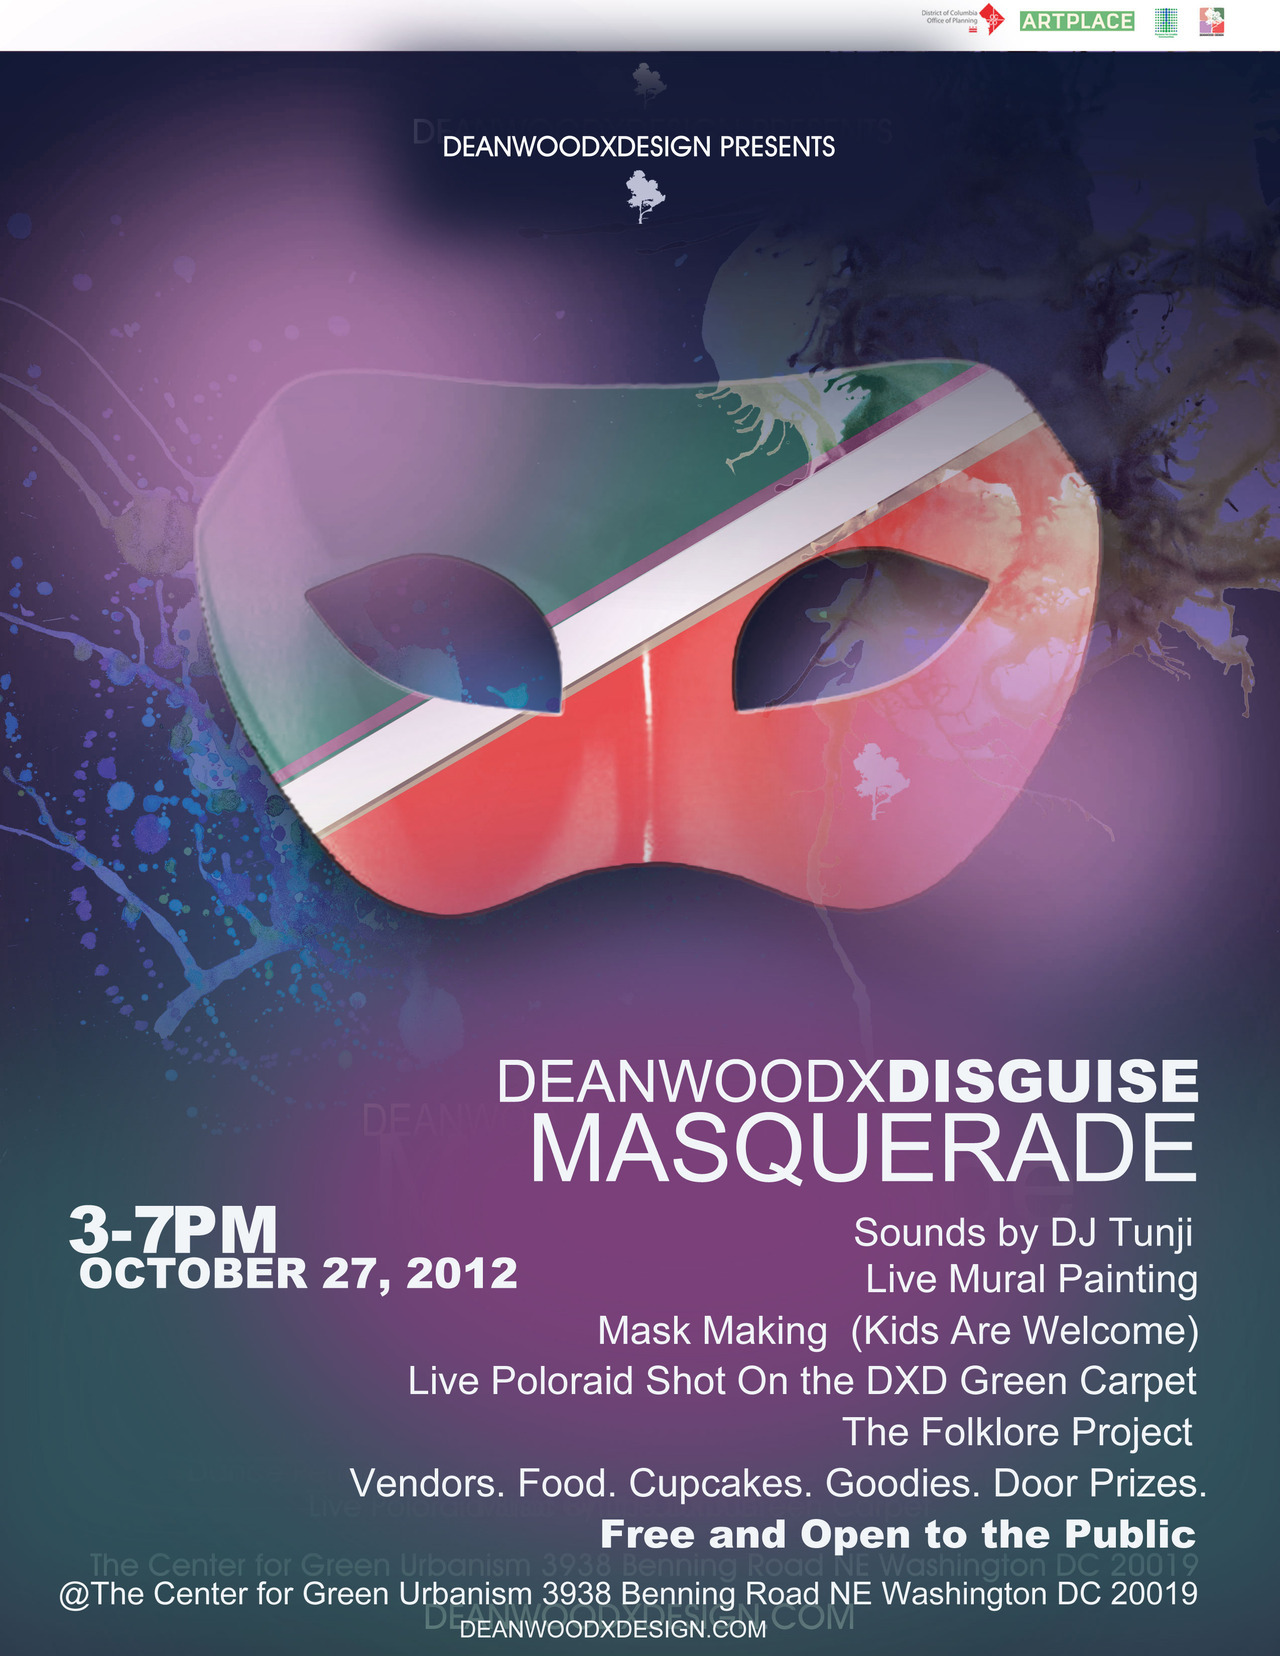 Join us for our final event DeanwoodxDisguise Masquerade on Saturday, October 27, 2012 from 3pm-7pm. Join the DeanwoodxDesign team, artists, partners and supporters as we celebrate the end of Deanwood's first temporium project. We hope that everyone who has helped to make these last four months a success will come out and celebrate with us! FREE AND OPEN TO THE PUBLIC RSVP HERE http://deanwoodxdisguise.eventbrite.com/ Sounds by DJ TunjiMask Making-3pm-5pm Live Mural PaintingSamba Dance Performance/Exhibition Featuring Andrea ThompsonLive Poloraid Shot On the DXD Green CarpetMarketplace : Institute of SuccessKiona Cloud, Massage Therapist Lush Life DesignsFREE Food. FREE Cupcakes. Goodies. Door Prizes. The Center for Green Urbanism Orange Line Minnesota Avenue MetroBuses-X2/U8 PARKING IS AVAILABLE ACROSS THE STREET AT THE BENNING ROAD LIBRARY AND THE SHOPPING CENTER  Related articles ArtPlace Temporium: Press Release: DeanwoodxDesign Arts & Cultural Temporium Launches July 14 (techtasters.tumblr.com) Gentrification and Transportation in Washington: Part II of a Special Report (transportationnation.org)